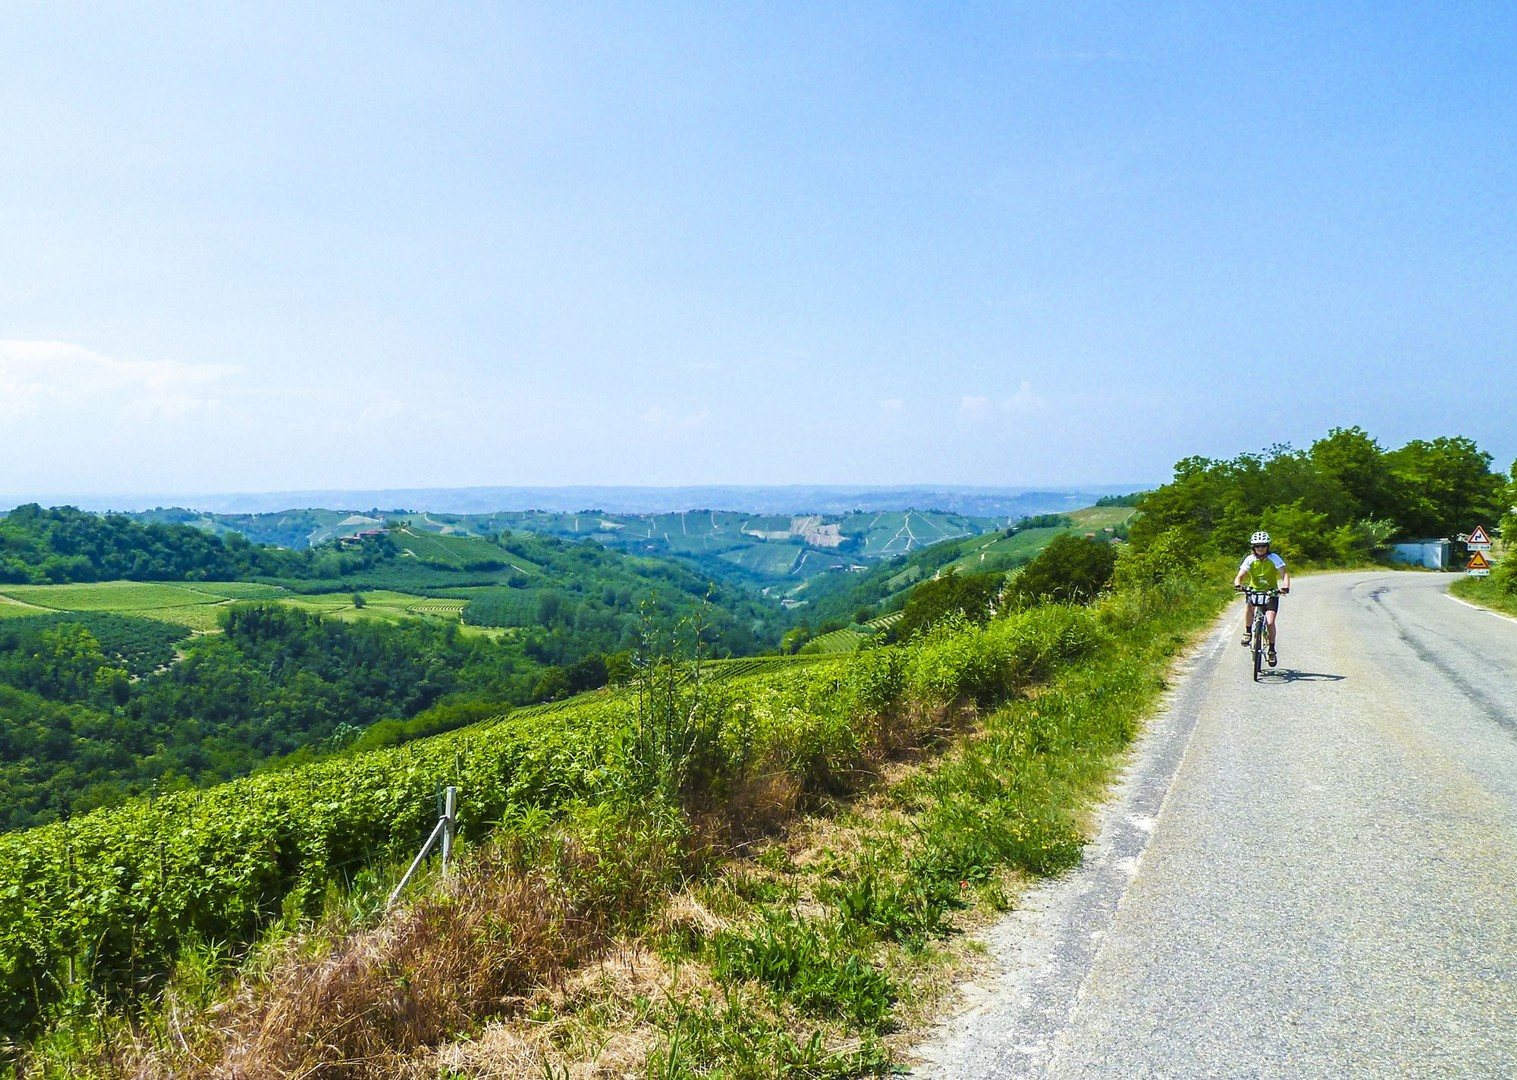 wine-tour-biking-barolo-barbaresco-nebbiolo-moscati-vineyard-culture-italy.jpg - Italy - Piemonte - Vineyards and Views - Self-Guided Leisure Cycling Holiday - Italia Leisure and Family Cycling